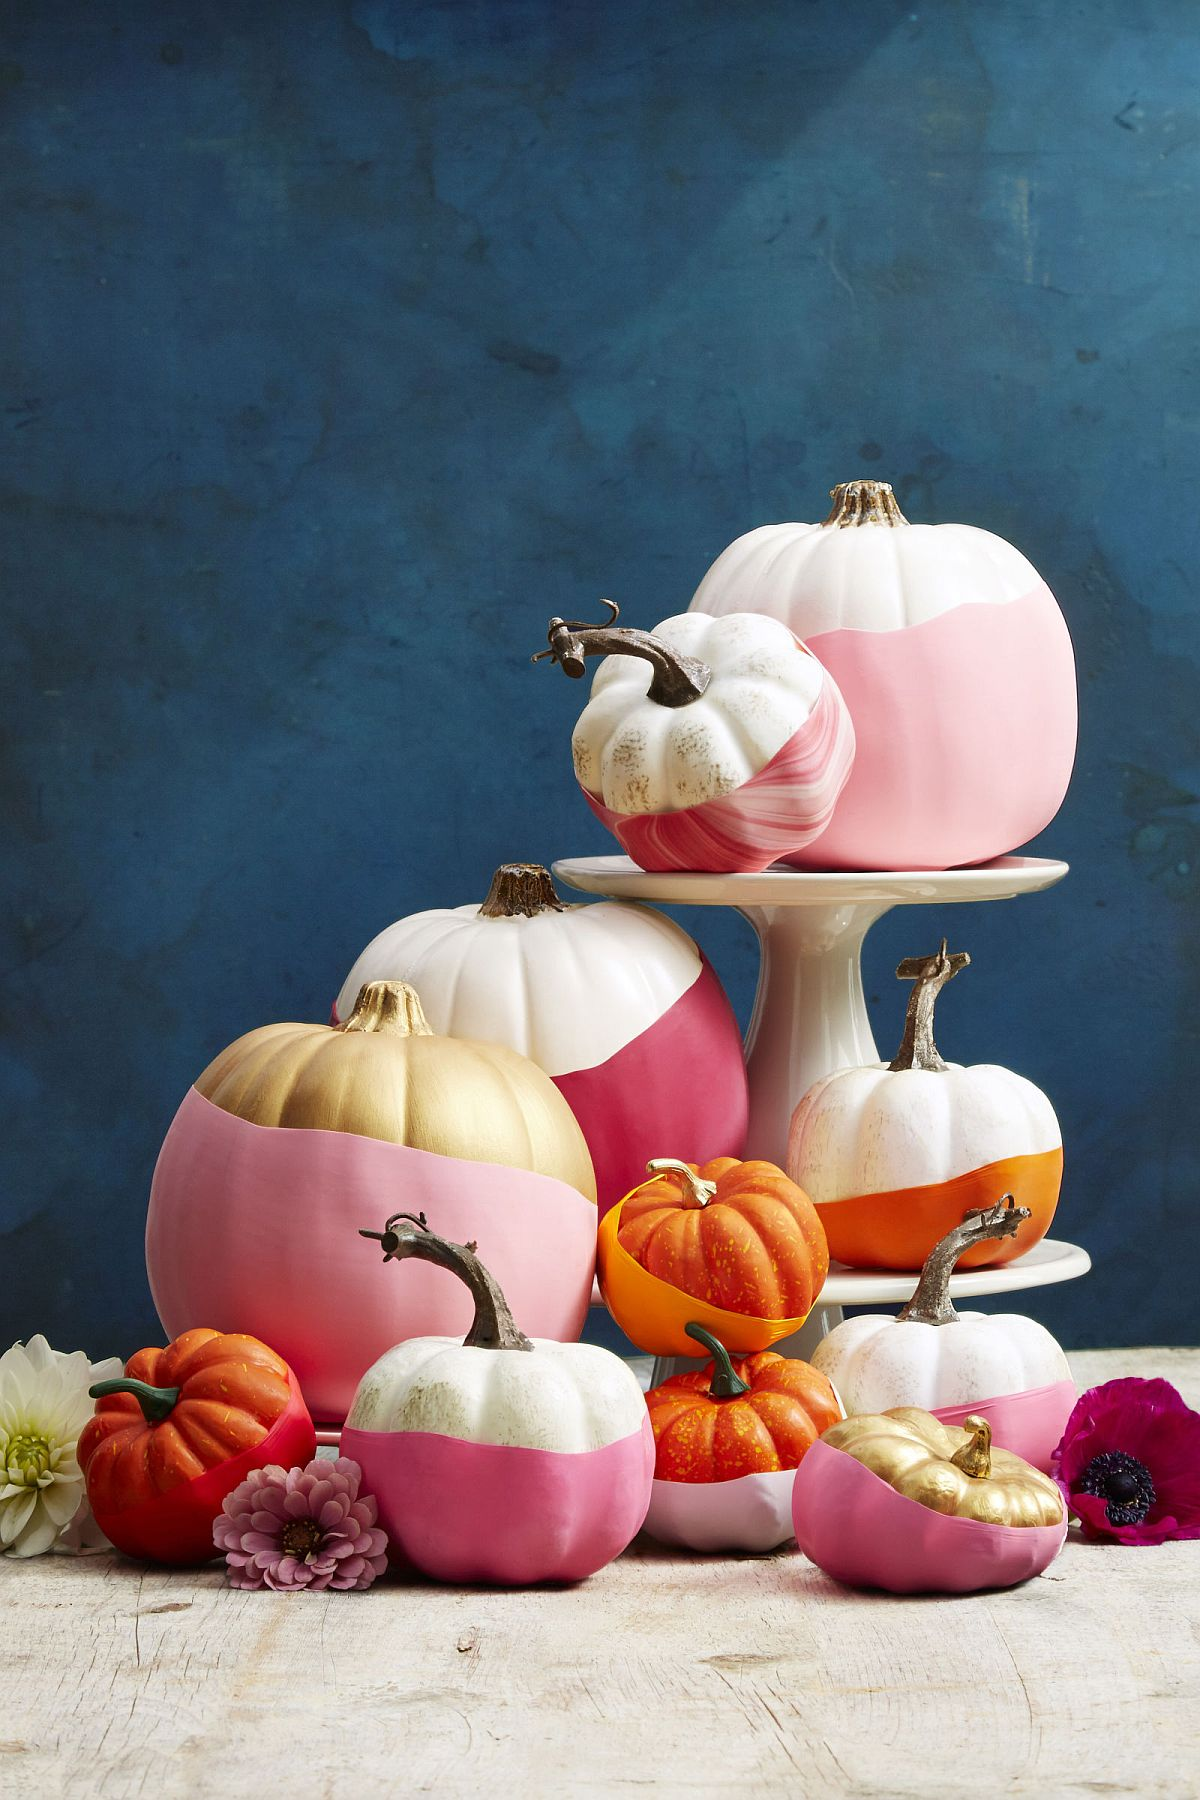 Pink gives chic glam to the awesome Halloween pumpkin decorative piece